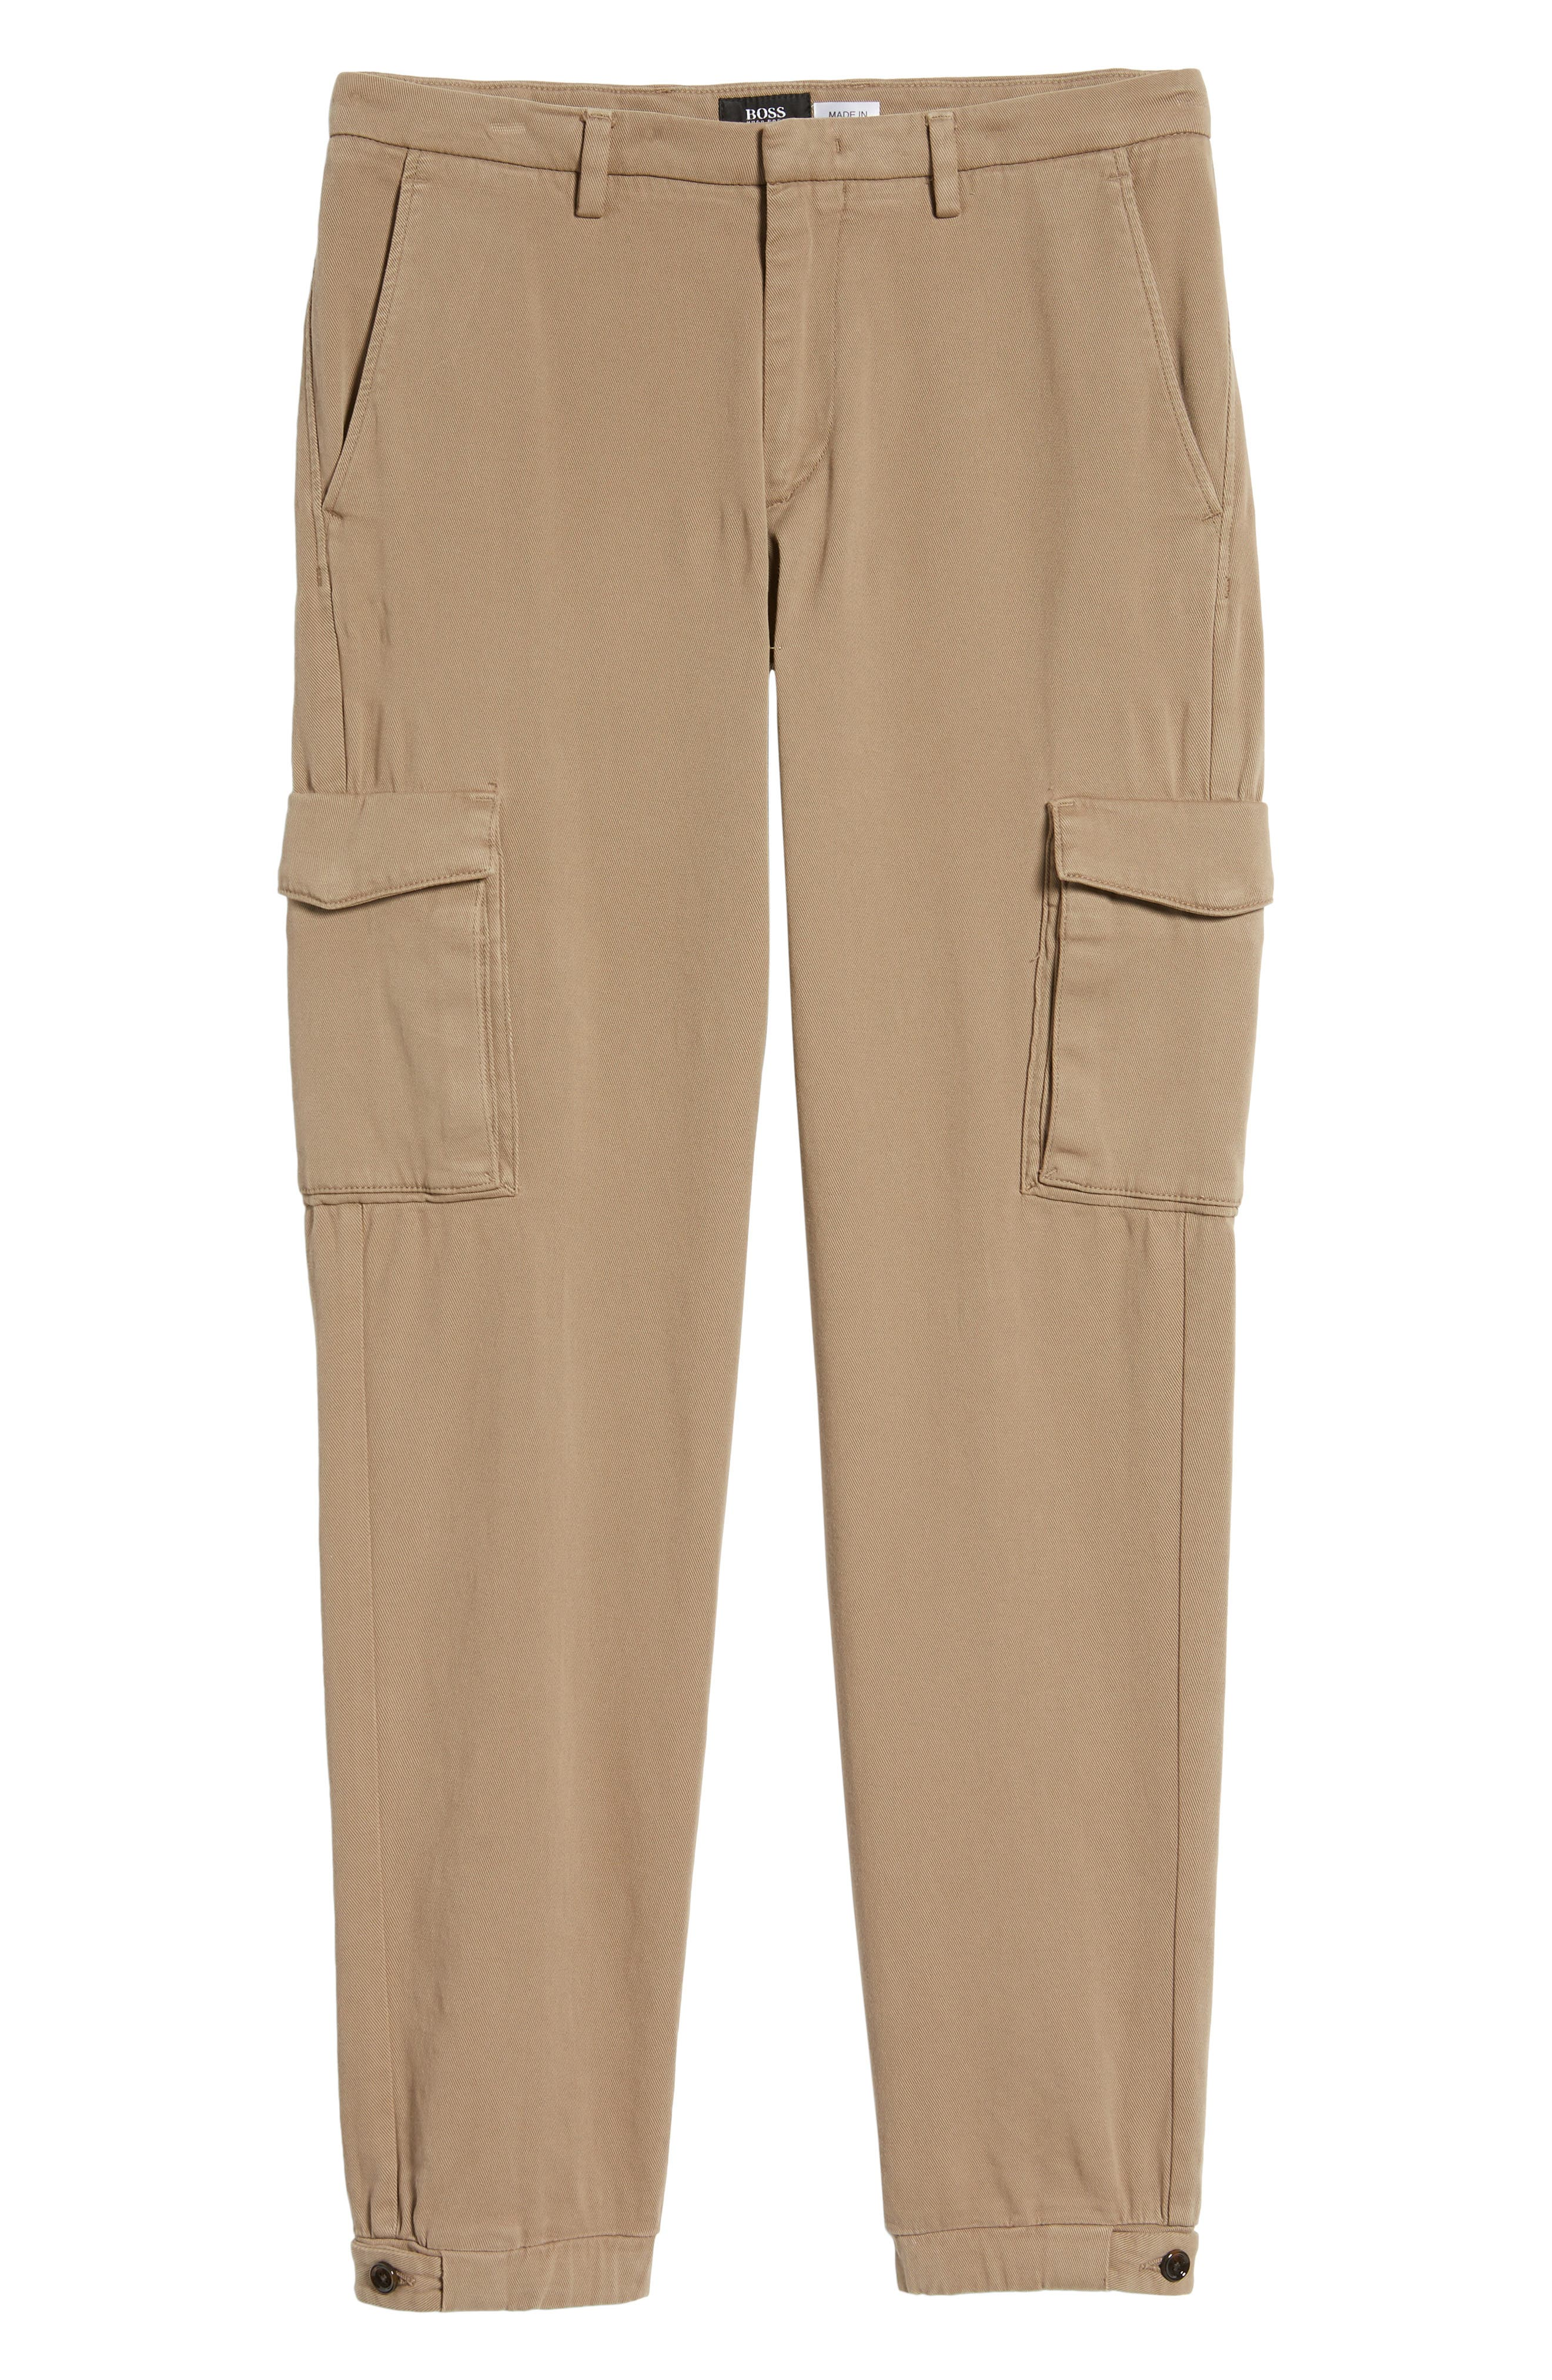 Kaigo Slim Jogger Pants,                             Alternate thumbnail 6, color,                             Khaki